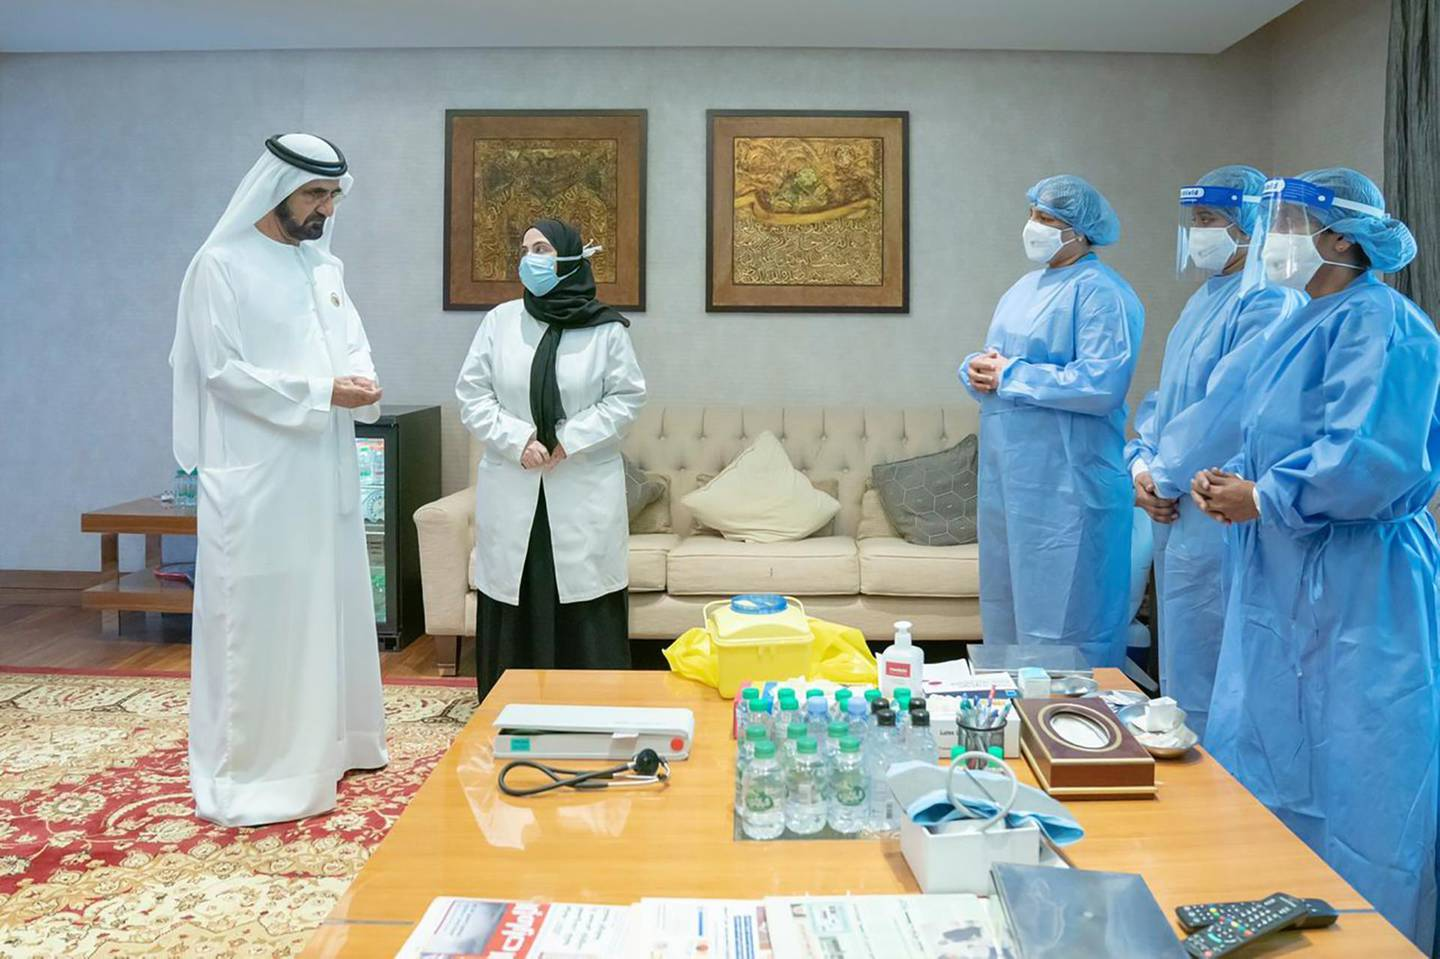 """A handout image provided by United Arab Emirates News Agency (WAM) on November 3, 2020 shows Dubai's Ruler Crown Prince of Dubai Sheikh Mohammed bin Rashid Al-Maktoum (L) before receiving an injection of a COVID-19 coronavirus vaccine. Dubai's ruler has received an experimental coronavirus vaccine, according to his Twitter account on November 3, as global cases remain on the rise. Sheikh Mohammed -- who is also prime minister of the United Arab Emirates -- is the latest in a string of Gulf officials who have been injected by an experimental drug that could help bring the pandemic to an end. Chinese drug giant Sinopharm began the third phase of trials for a Covid-19 vaccine in the United Arab Emirates in July, with Emirati officials saying the results have been positive. - === RESTRICTED TO EDITORIAL USE - MANDATORY CREDIT """"AFP PHOTO / HO / WAM"""" - NO MARKETING NO ADVERTISING CAMPAIGNS - DISTRIBUTED AS A SERVICE TO CLIENTS ===  / AFP / - / === RESTRICTED TO EDITORIAL USE - MANDATORY CREDIT """"AFP PHOTO / HO / WAM"""" - NO MARKETING NO ADVERTISING CAMPAIGNS - DISTRIBUTED AS A SERVICE TO CLIENTS ==="""